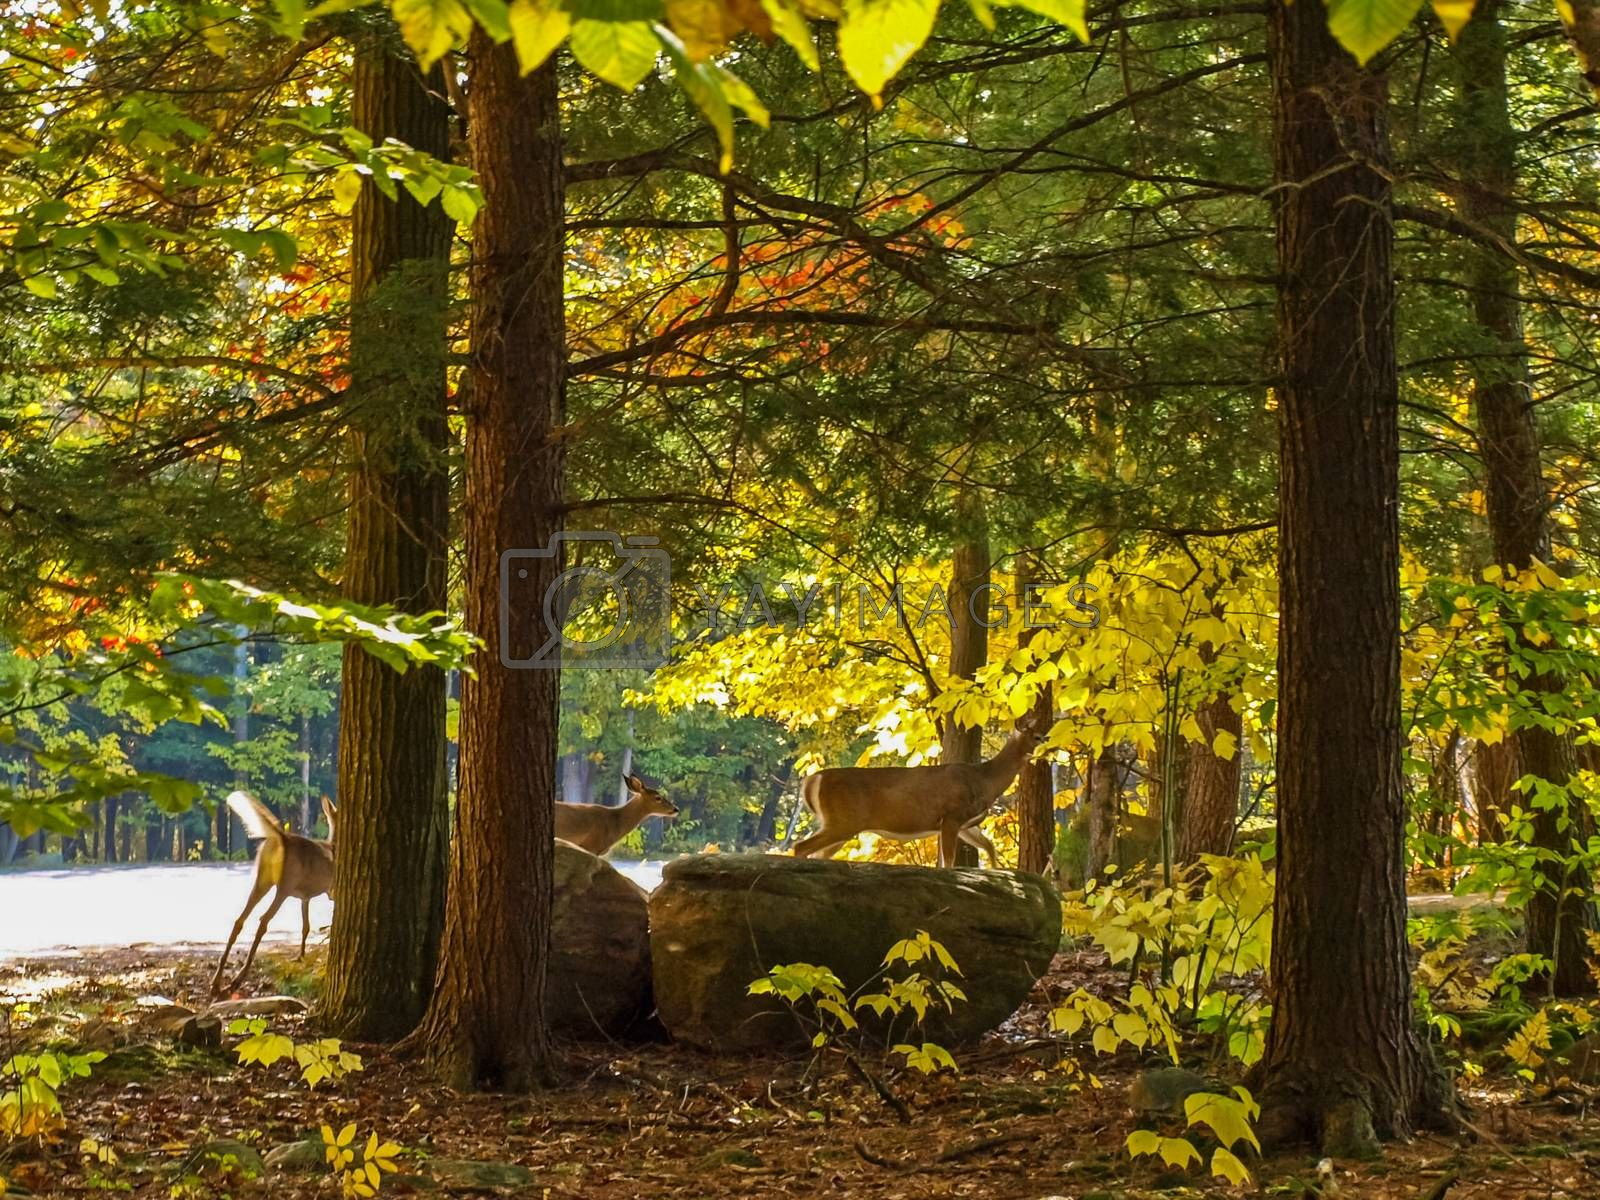 Forest deer in the autumn forest, animals near Lake Huron. a beautiful autumn landscape.